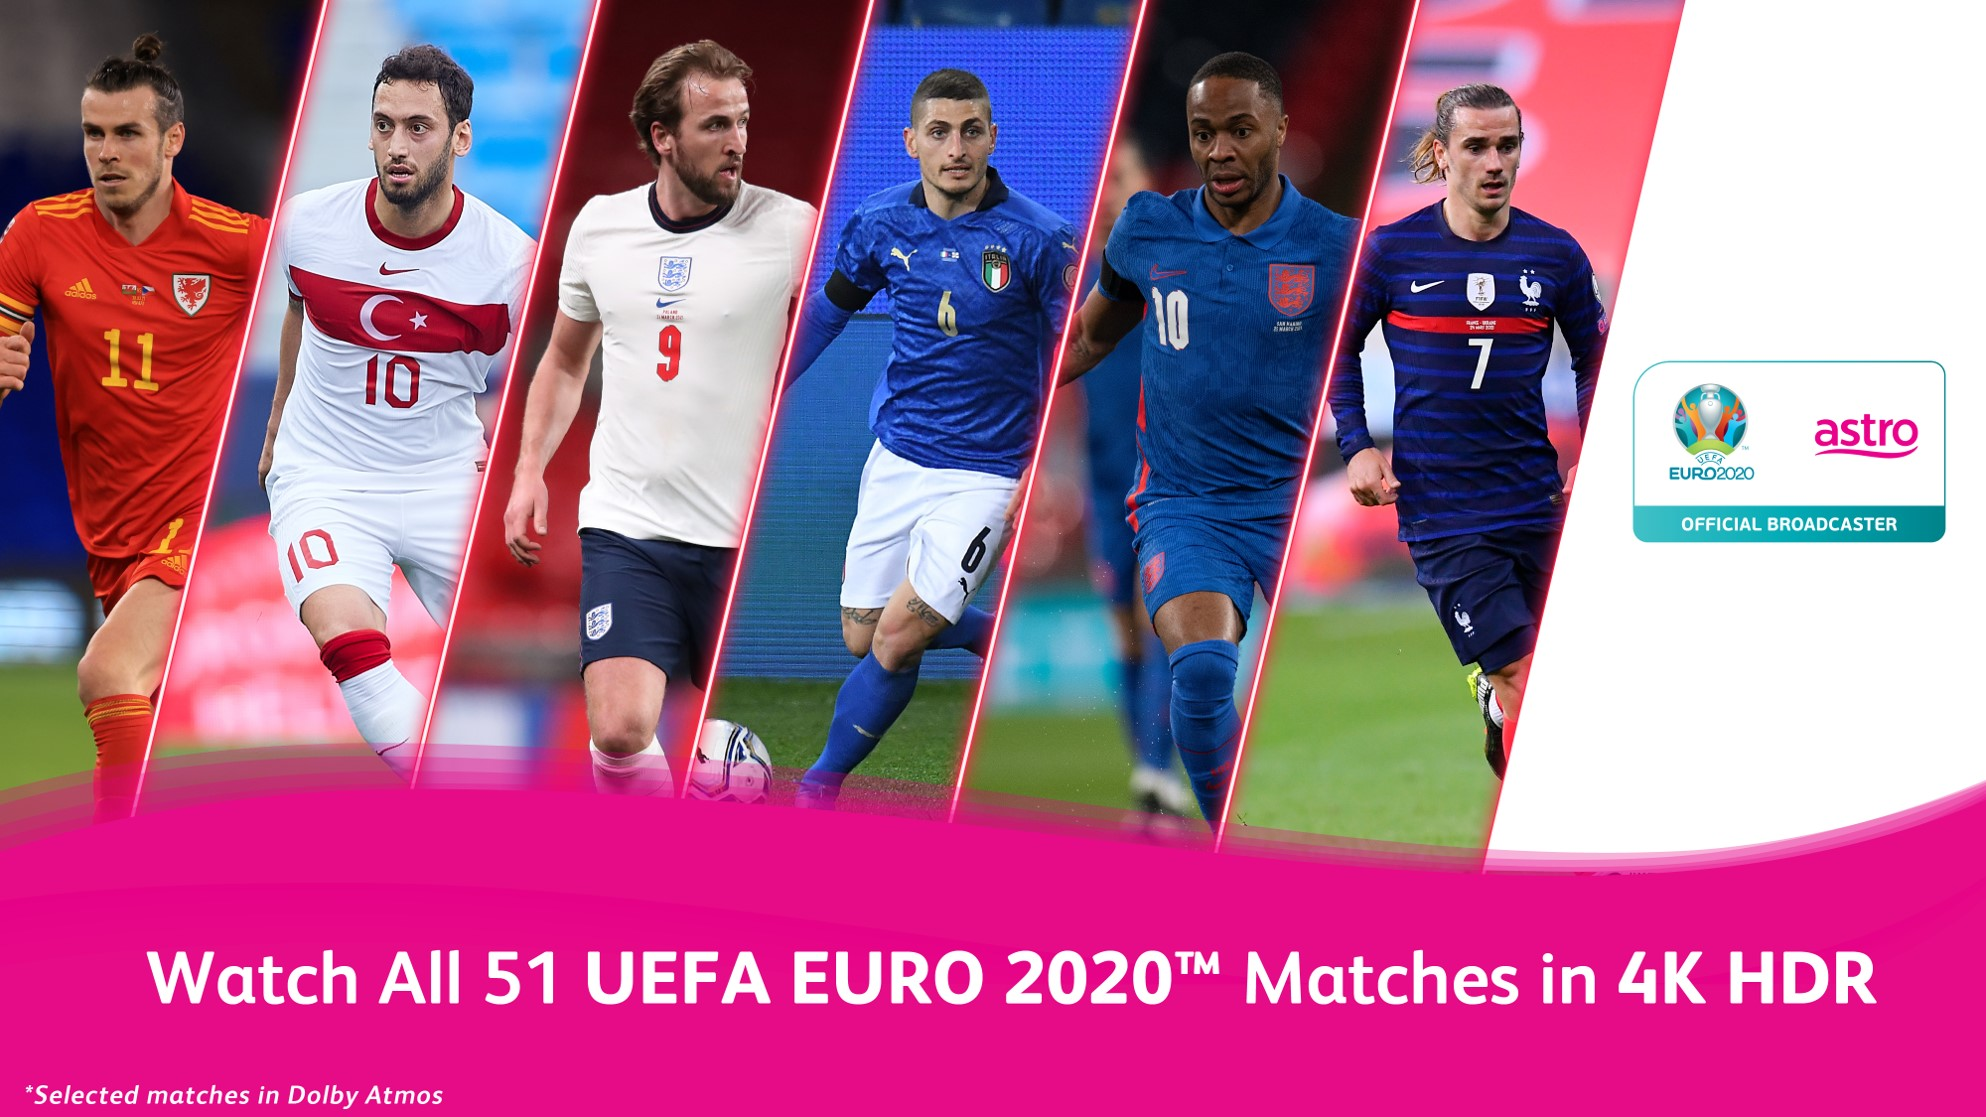 Astro Introduces First 4K HDR Broadcast of UEFA EURO 2020 and Olympic Games Tokyo 2020